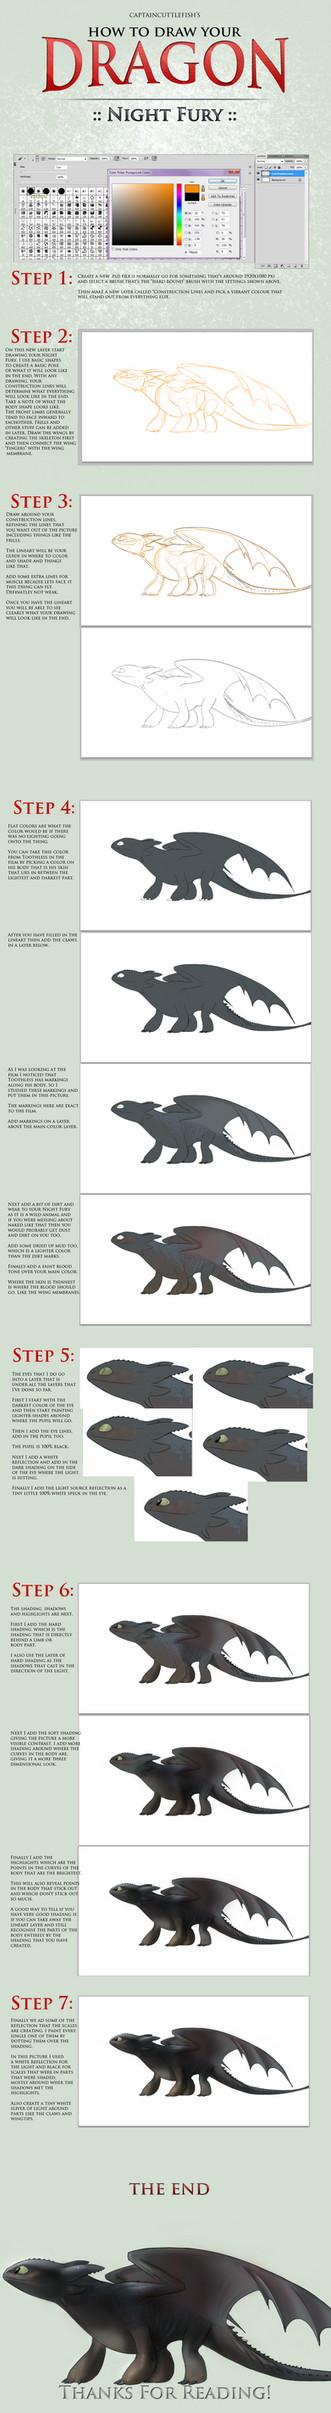 How To Draw Your Dragon: Night Fury by captaincuttlefish